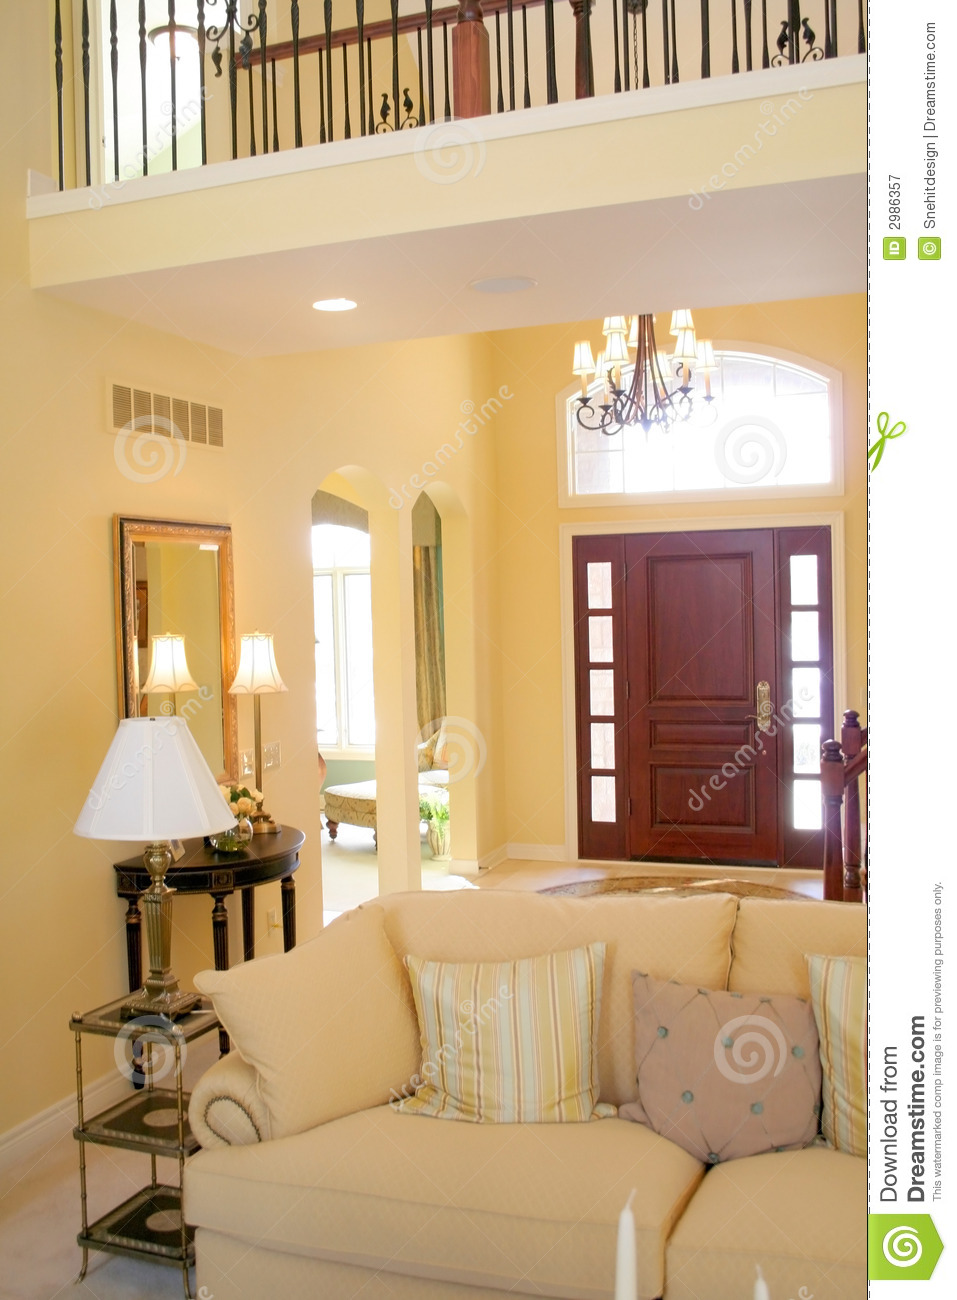 Beautiful Interiors stock image Image of lamp couches